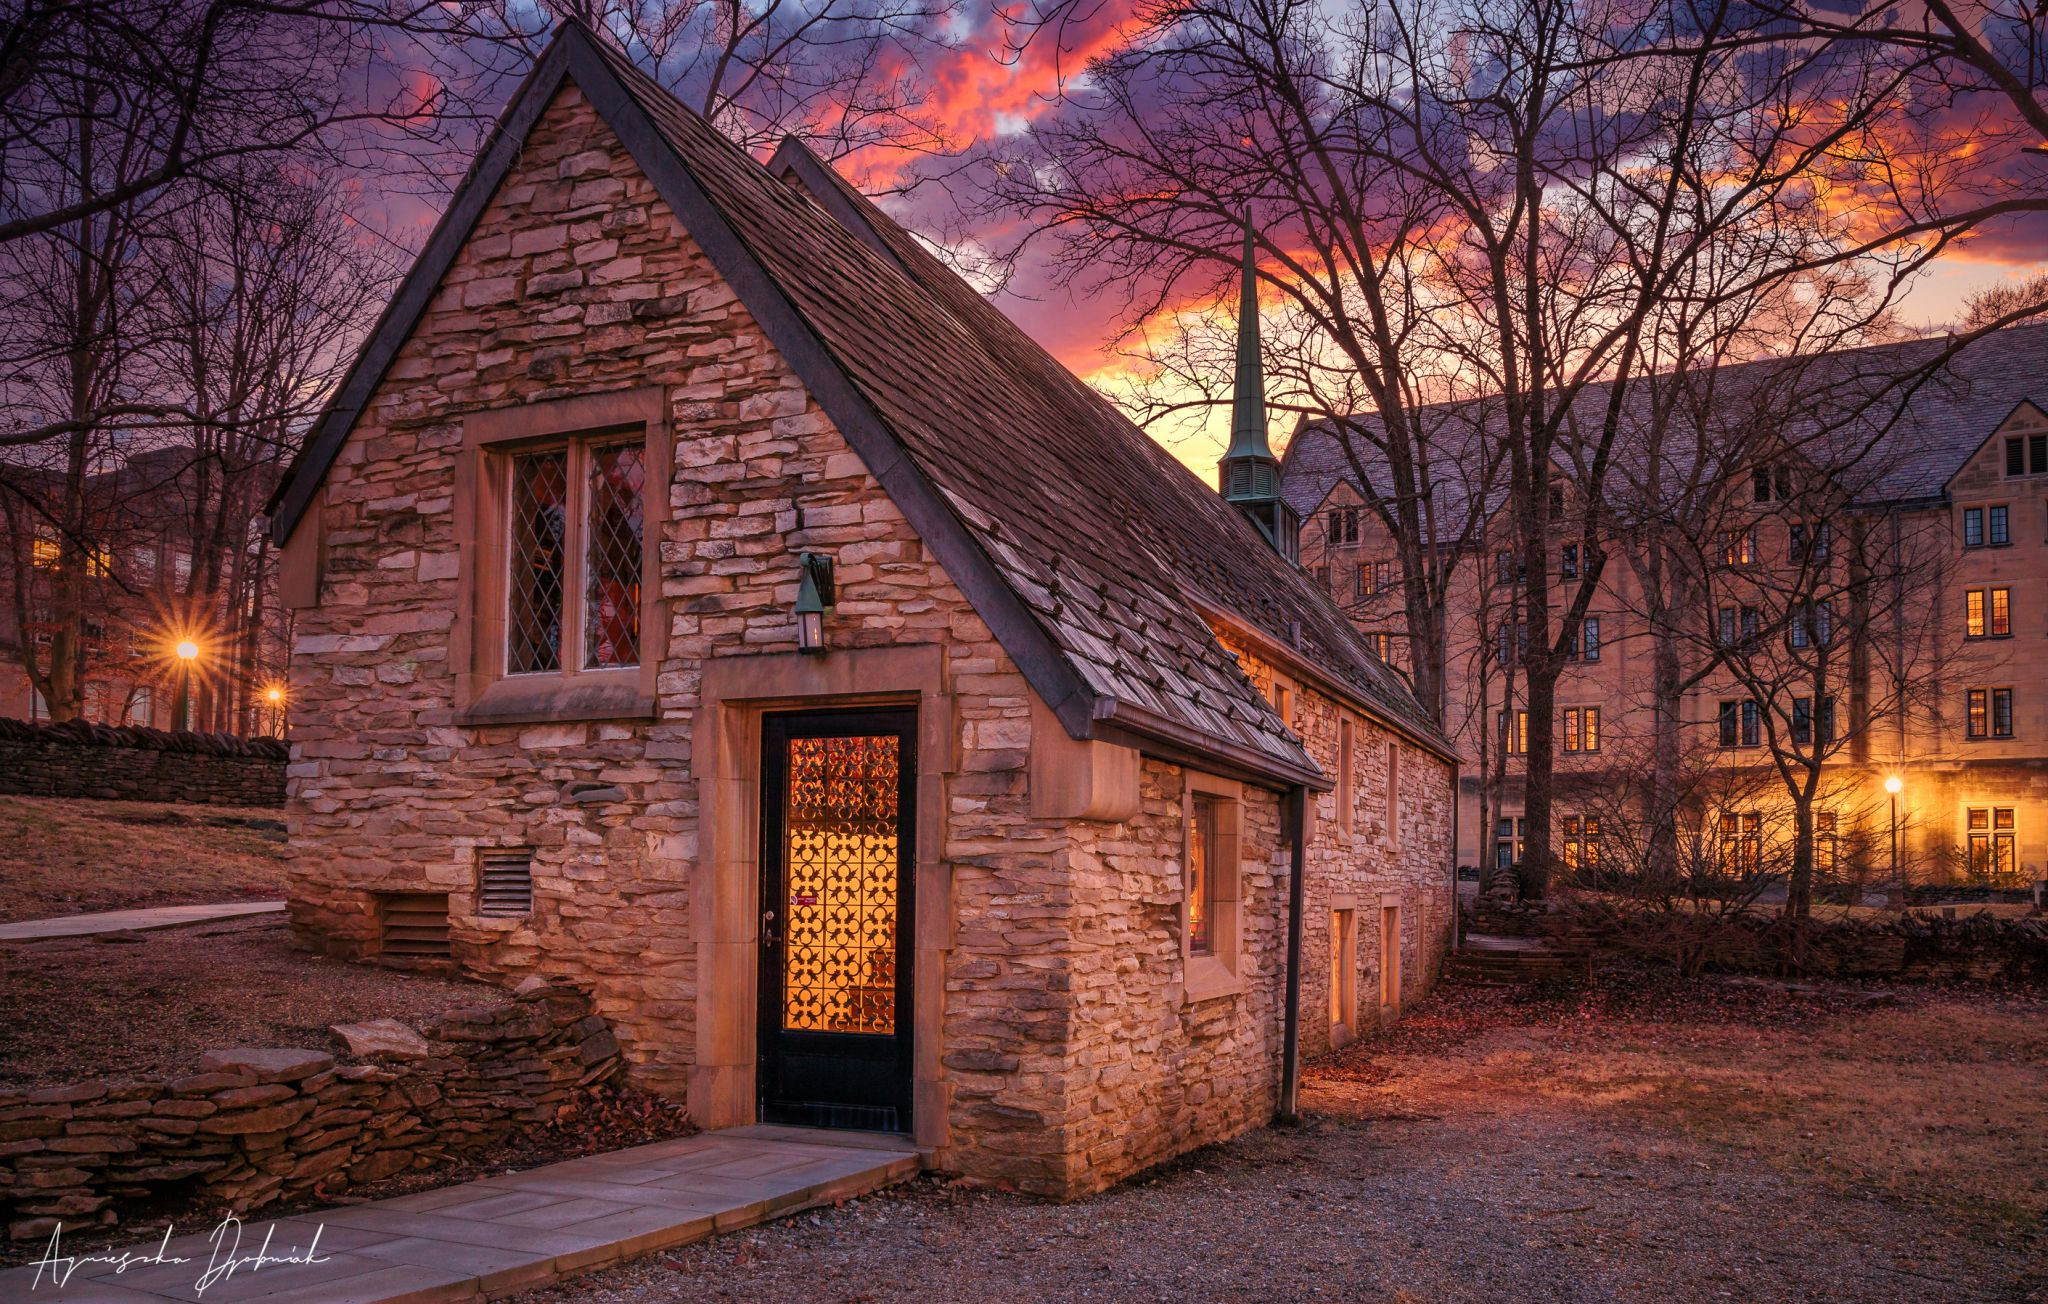 Beck Chapel at Indiana University Bloomington, USA